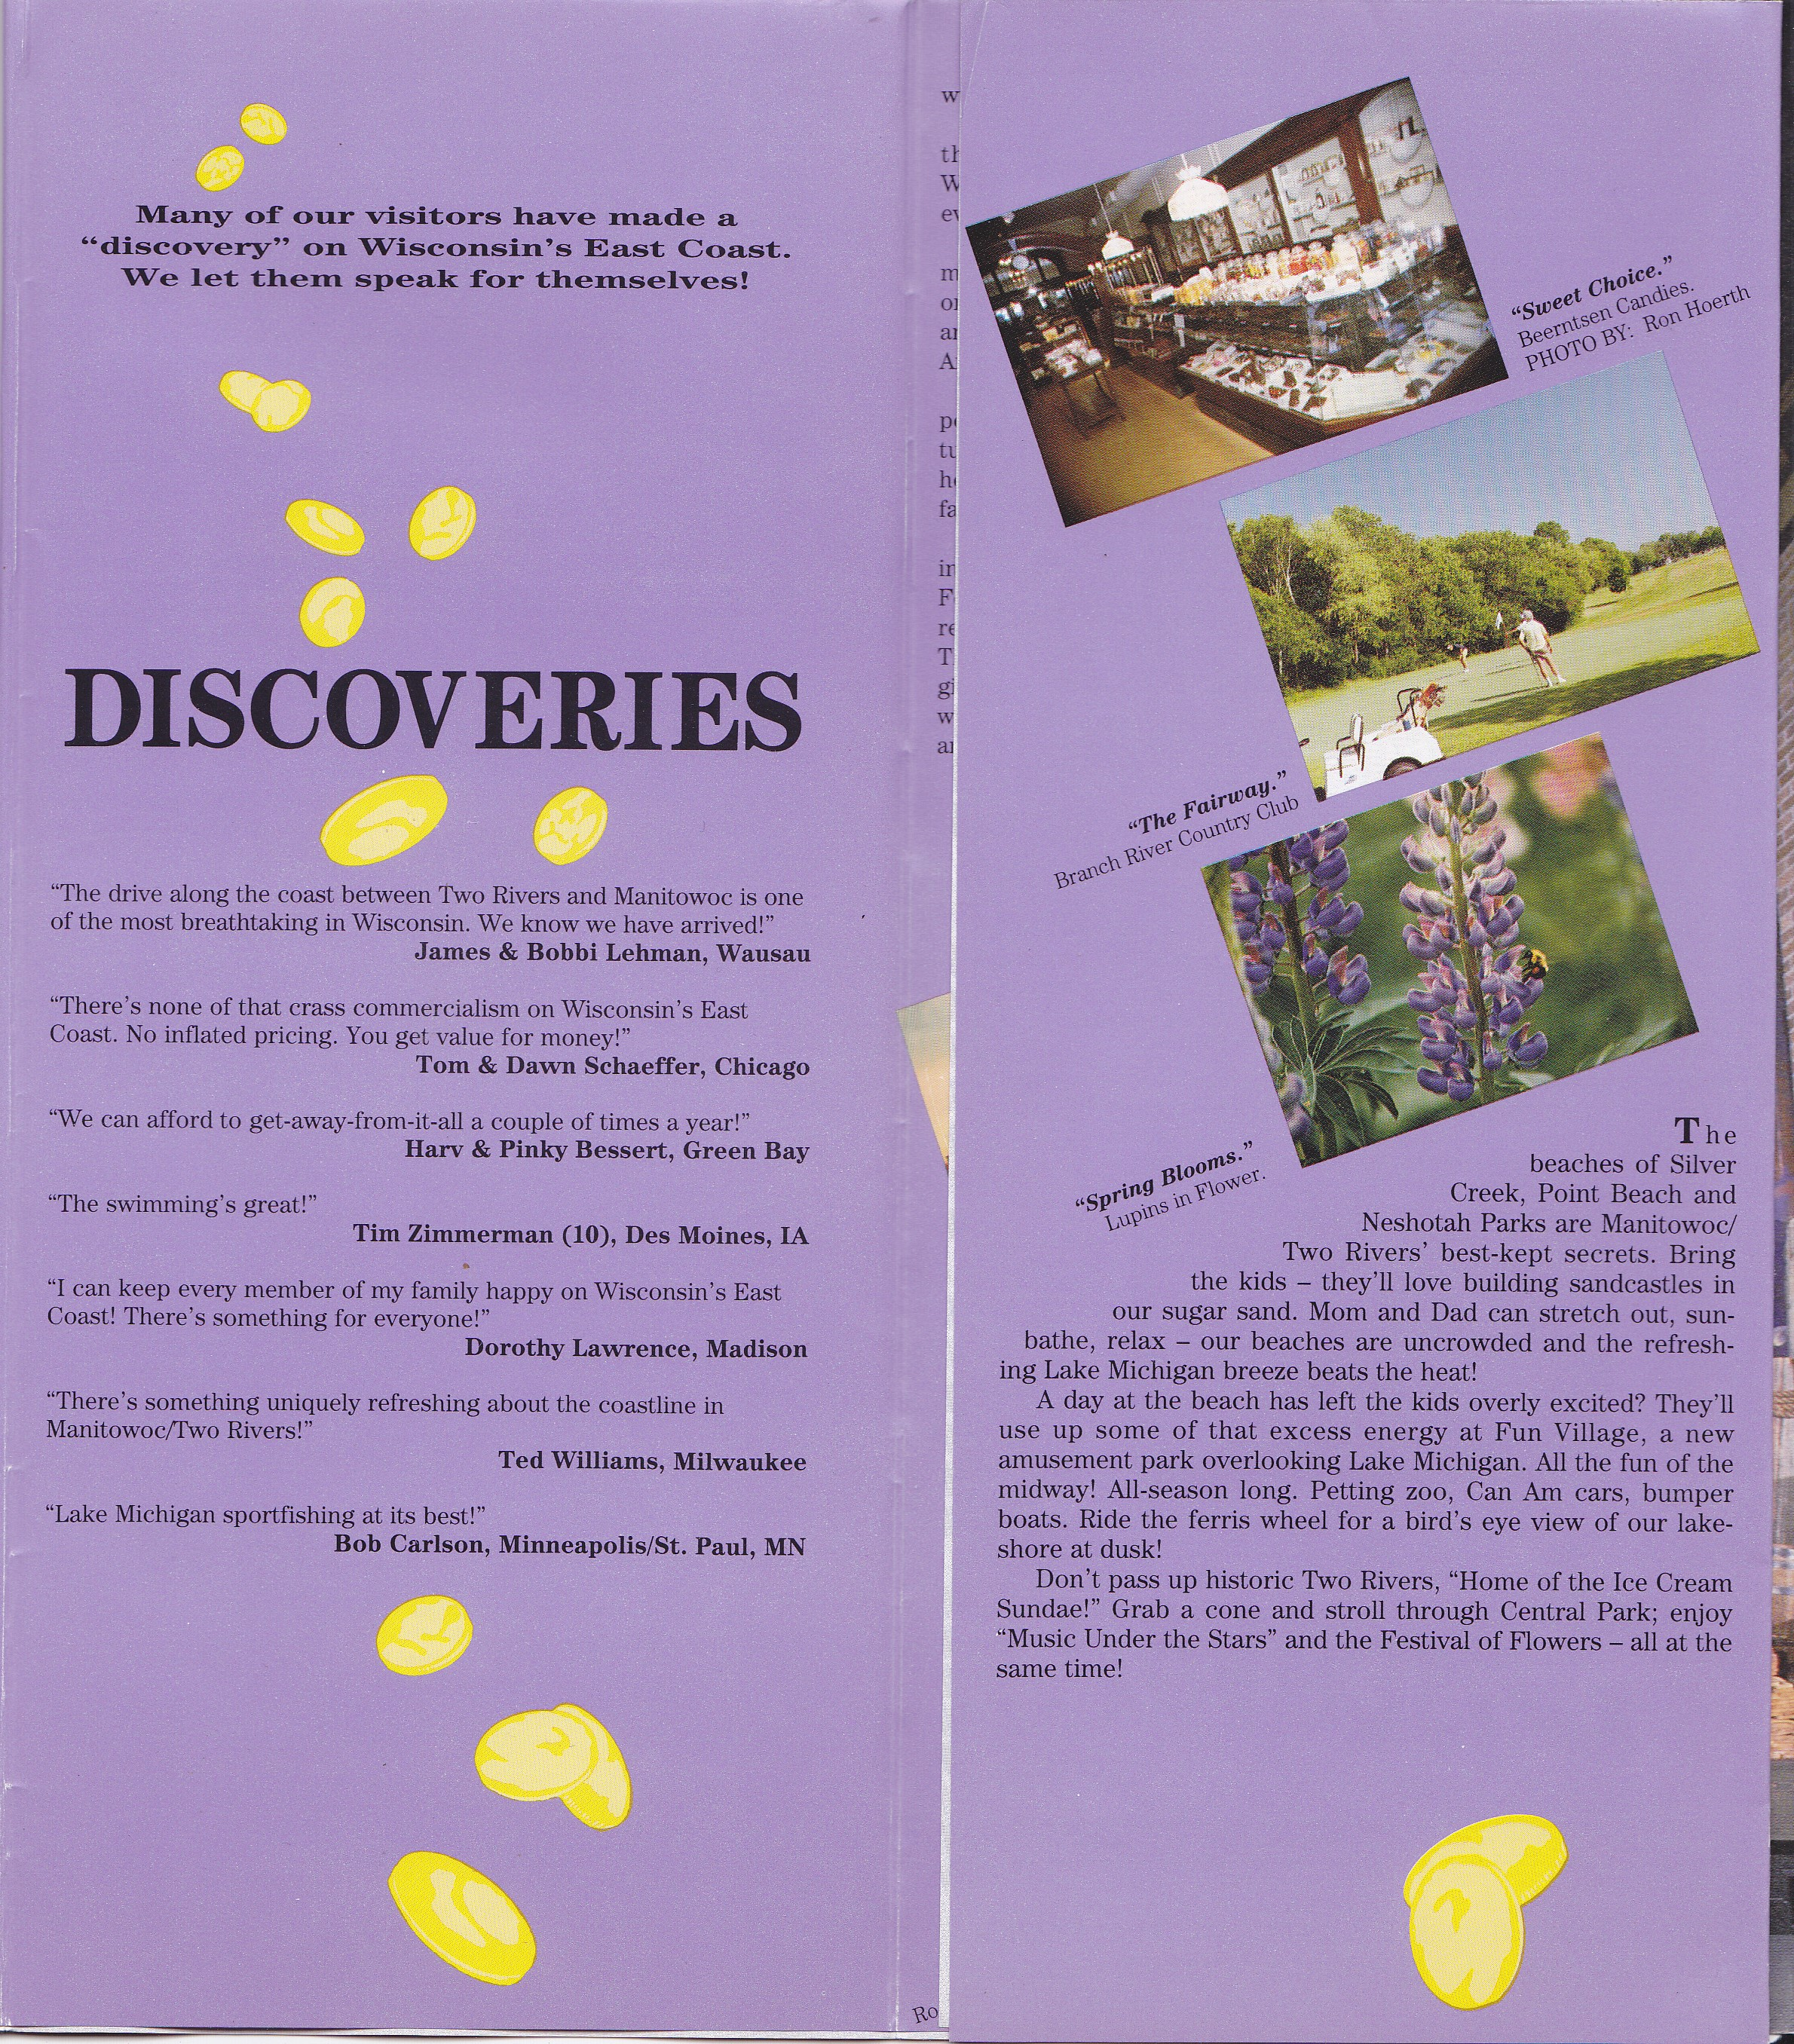 Discover Map_0004.jpg